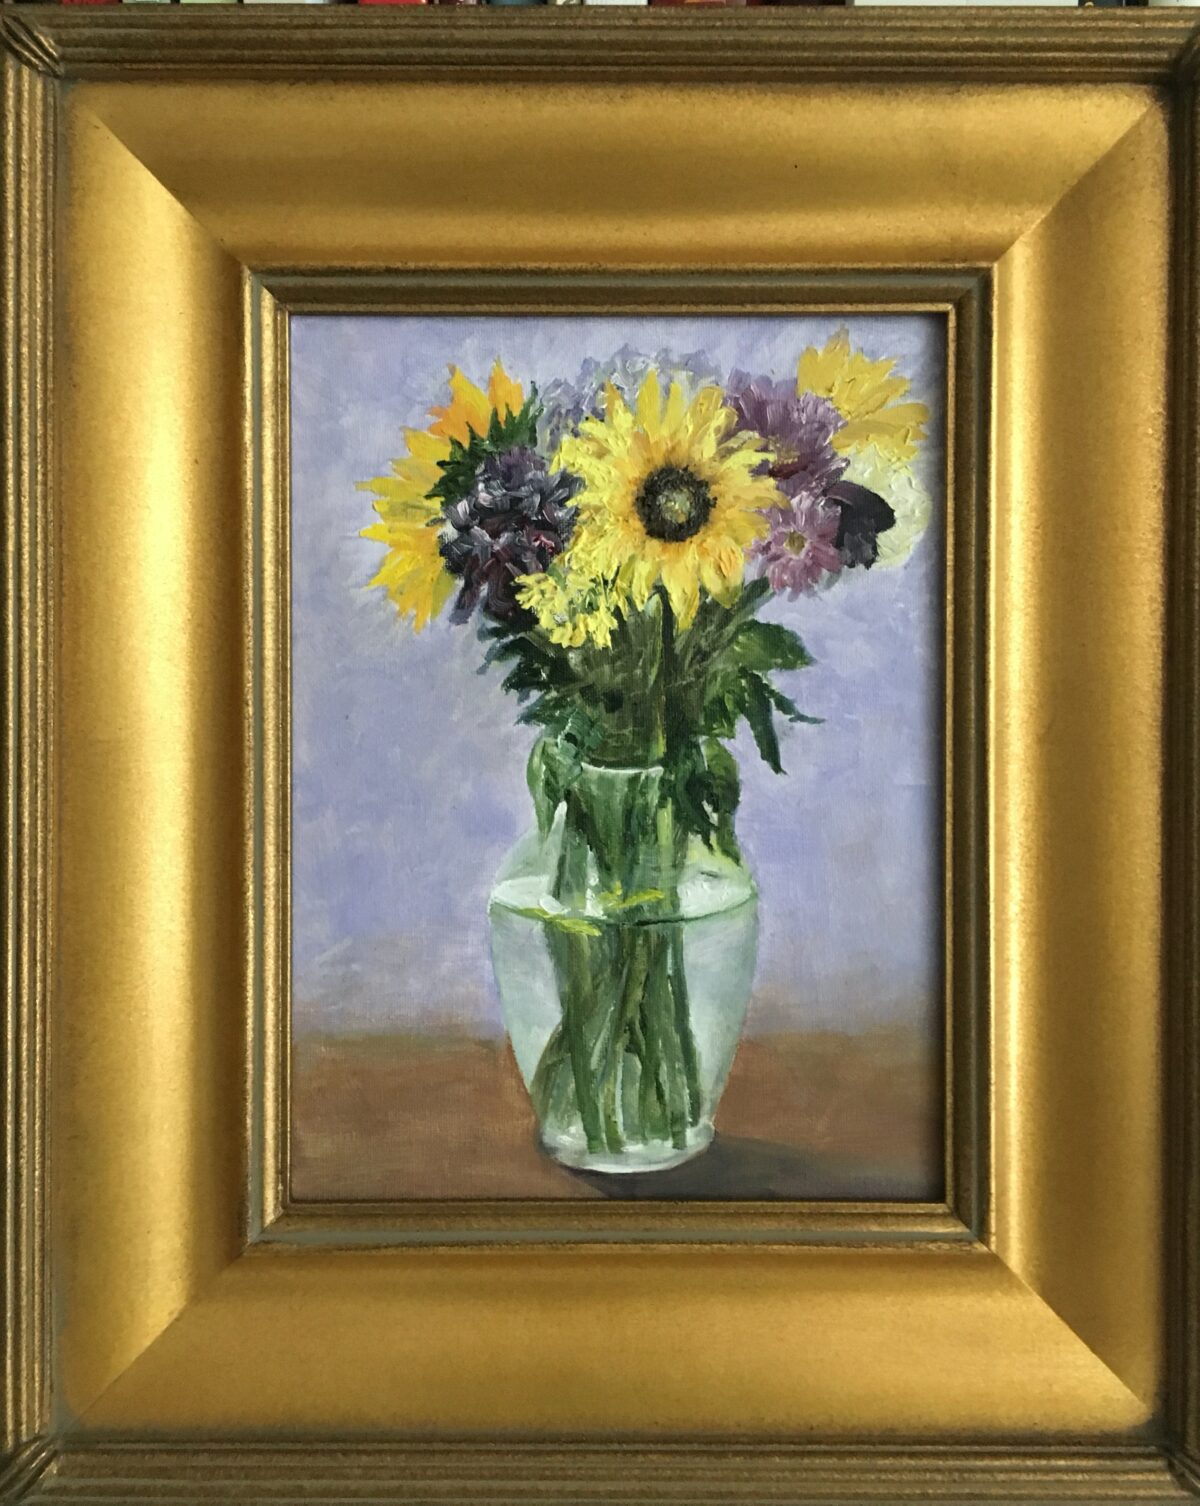 152 - Sunflower Bouquet - 12 x 9 - Still Life - $0 - 🔴